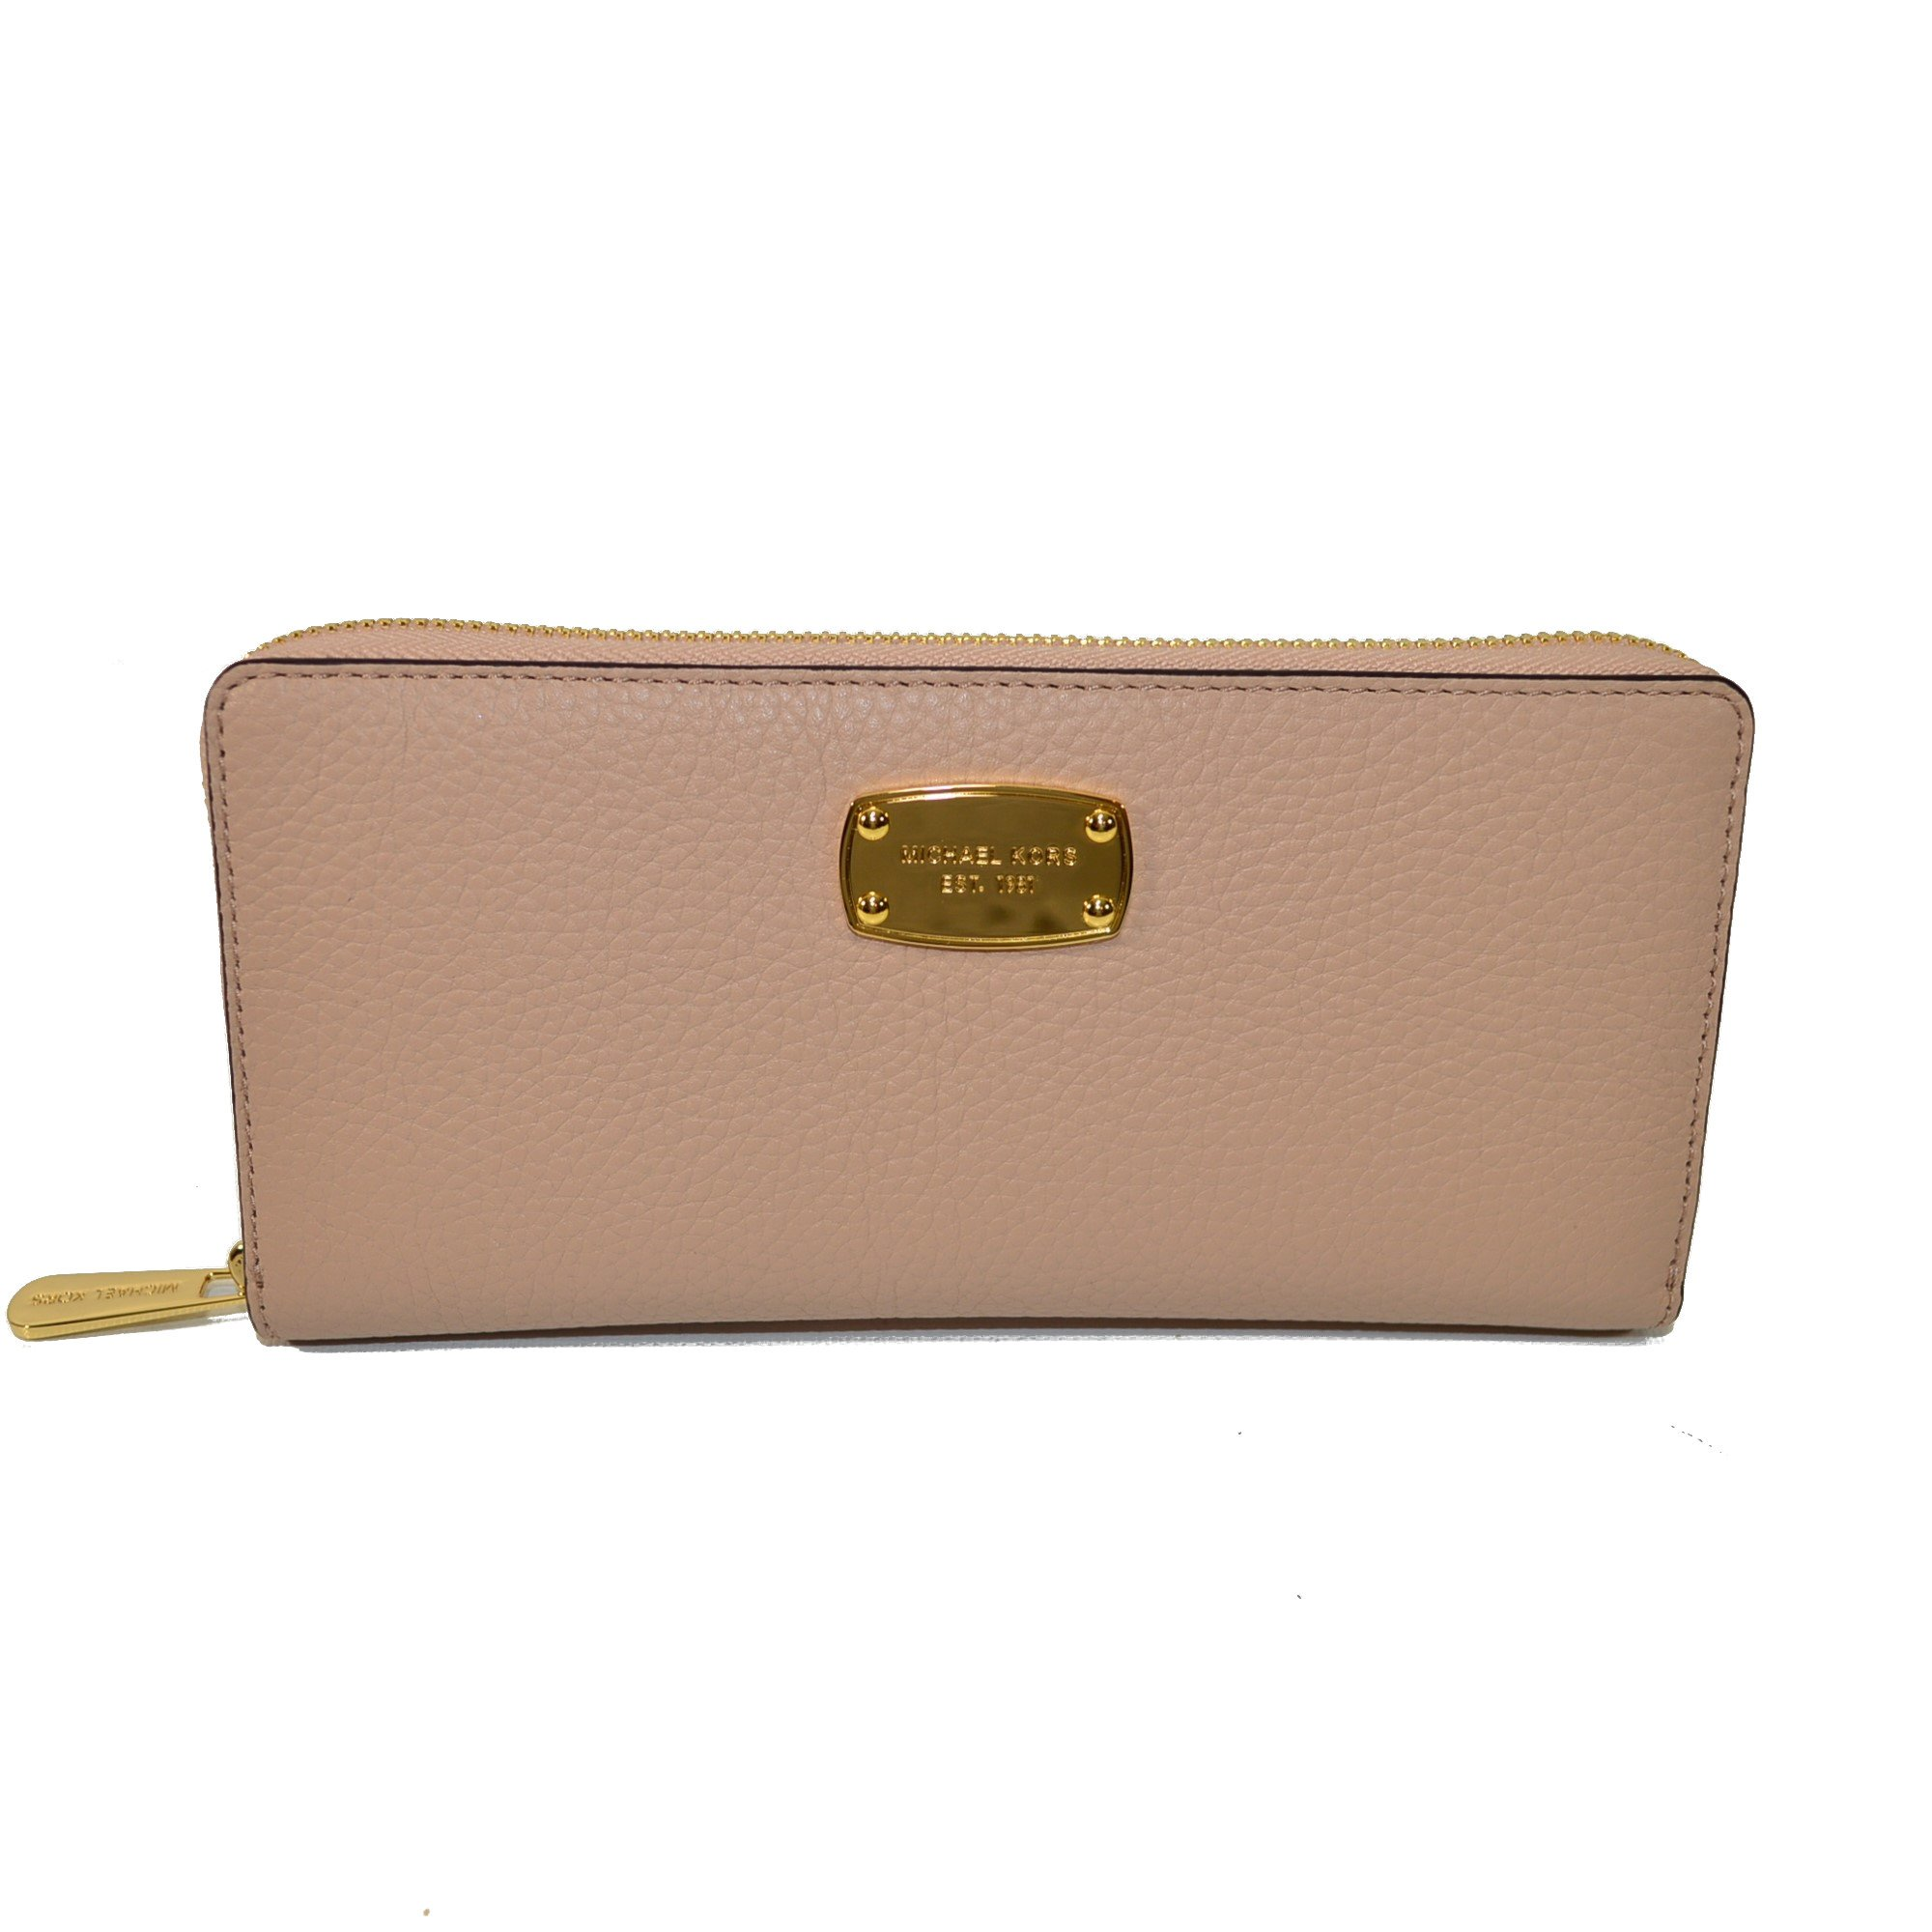 Michael Kors Jet Set Travel Zip Around Leather Clutch Blush by Michael Kors (Image #1)